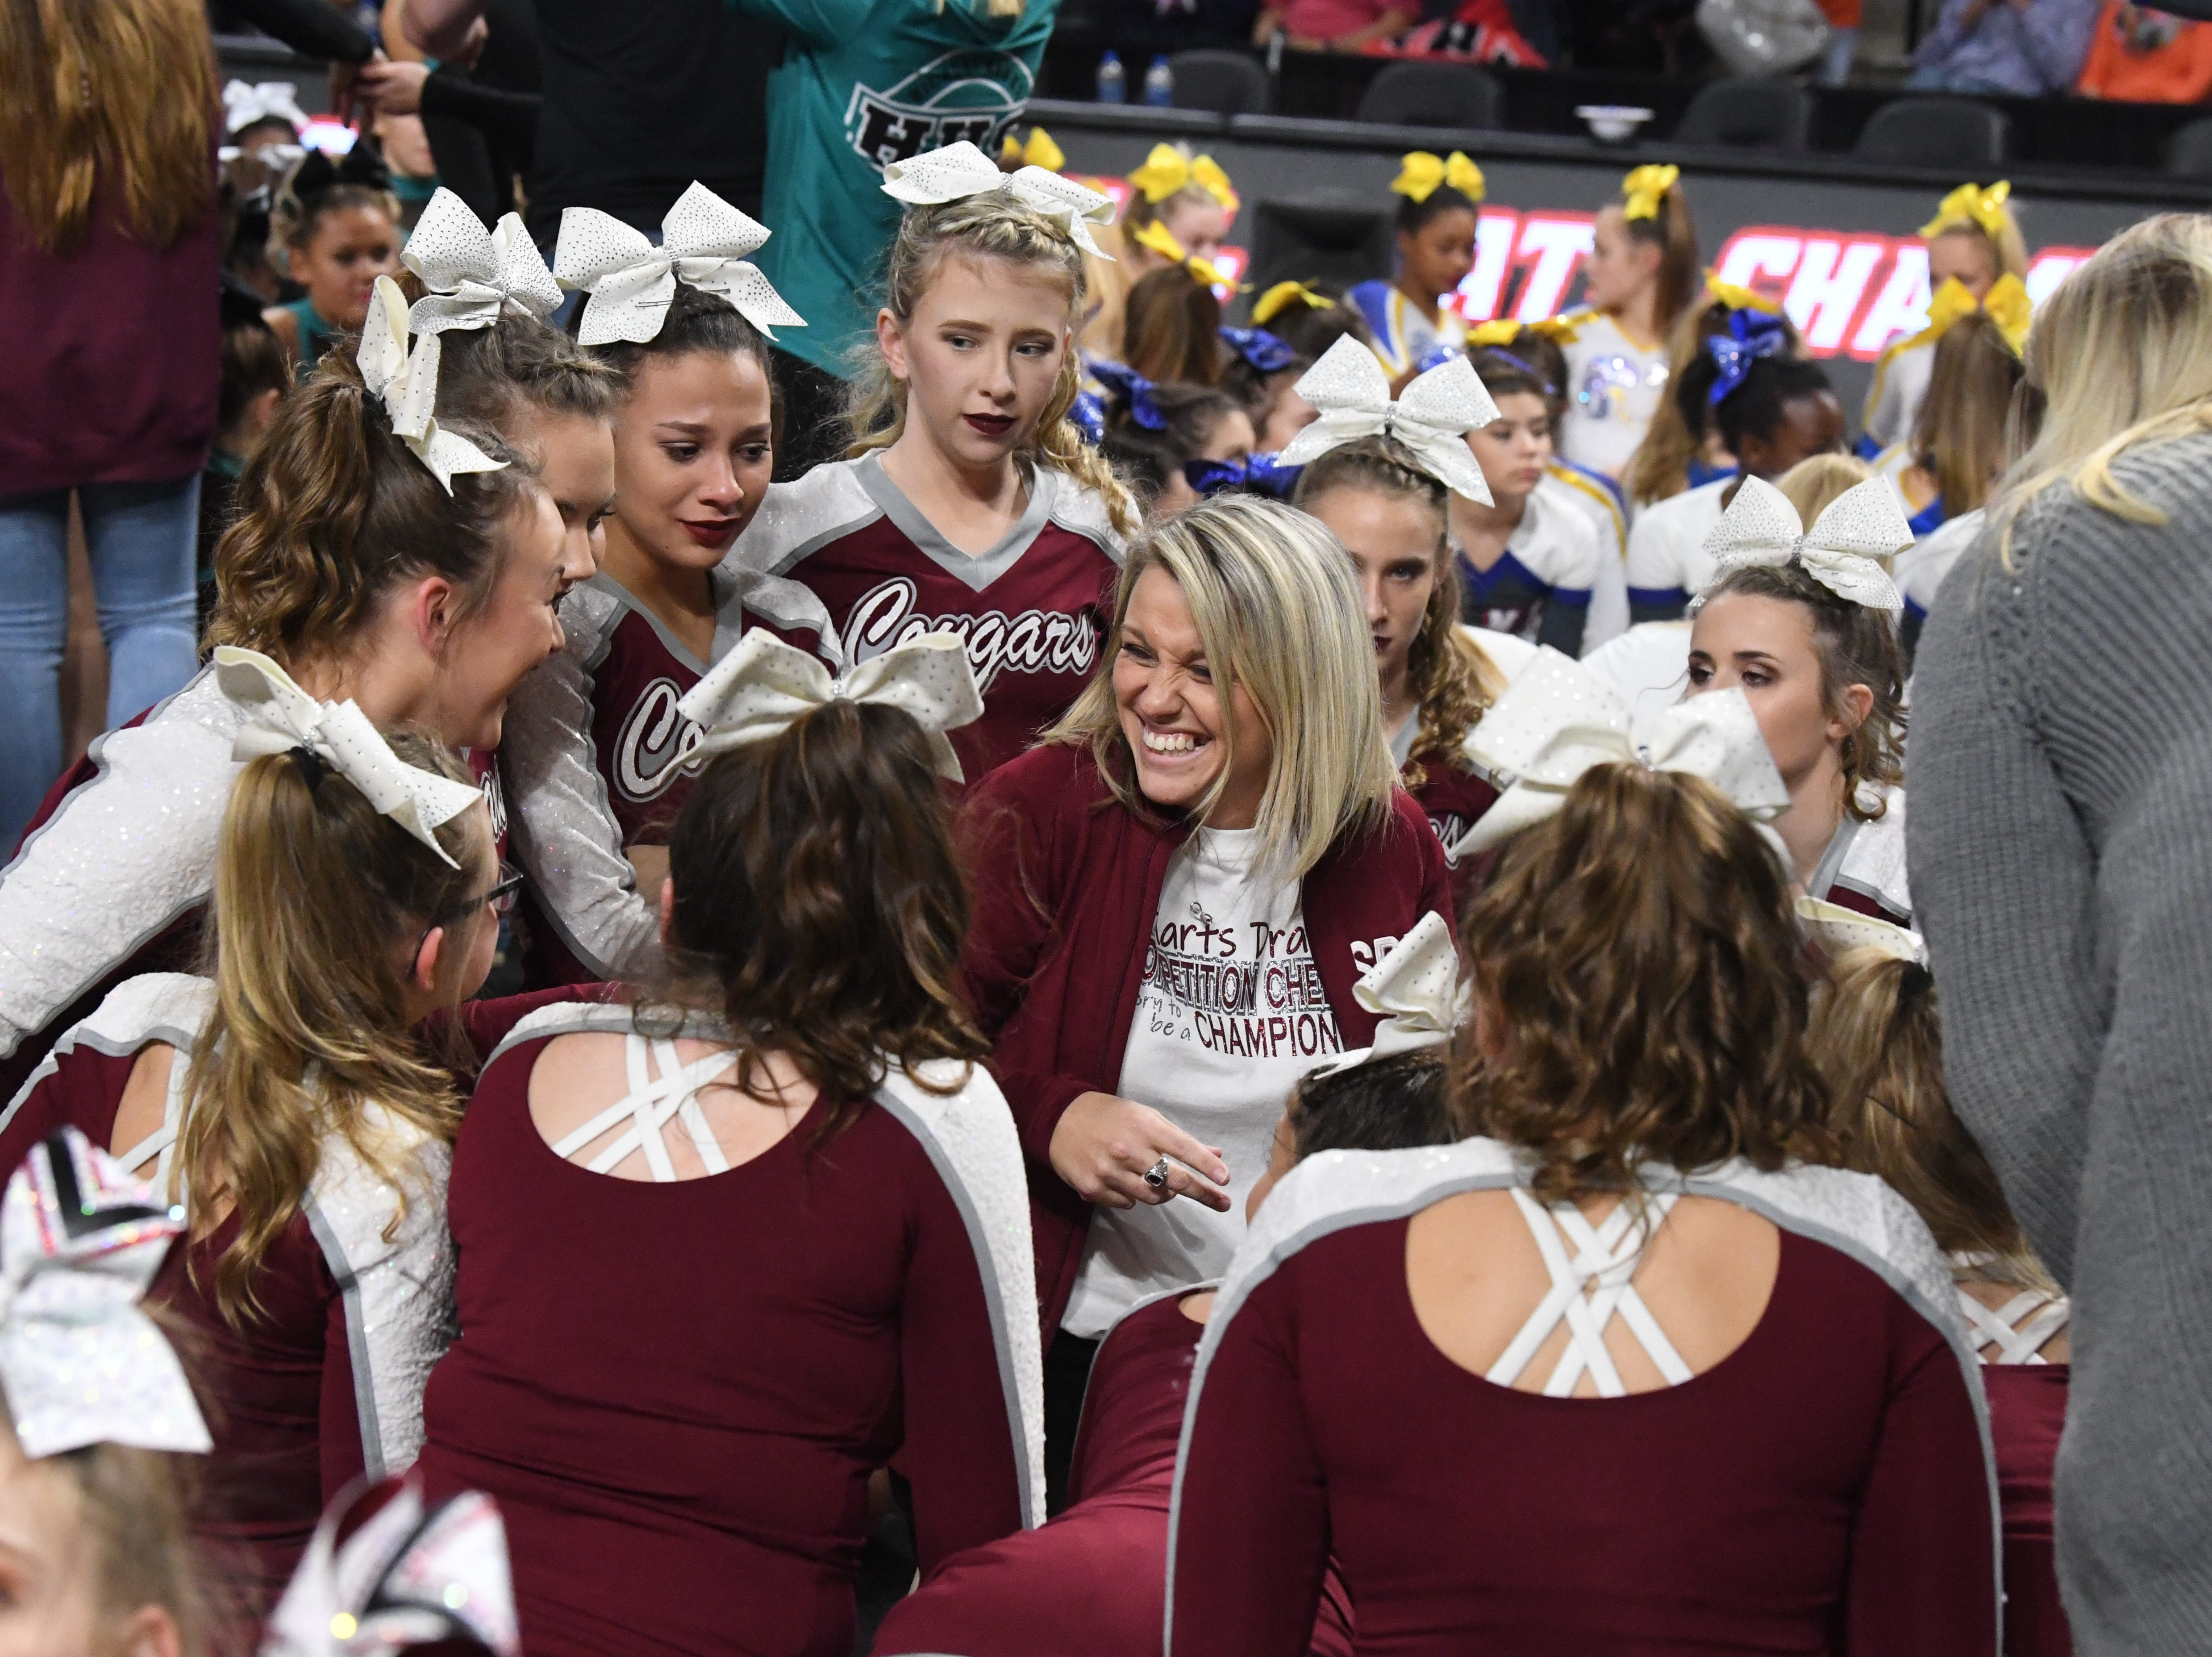 Stuarts Draft head coach Tammy Carter is with her team as they wait to hear the results in the VHSL Competition Cheer Championships in Richmond on Saturday, Nov. 3, 2018.